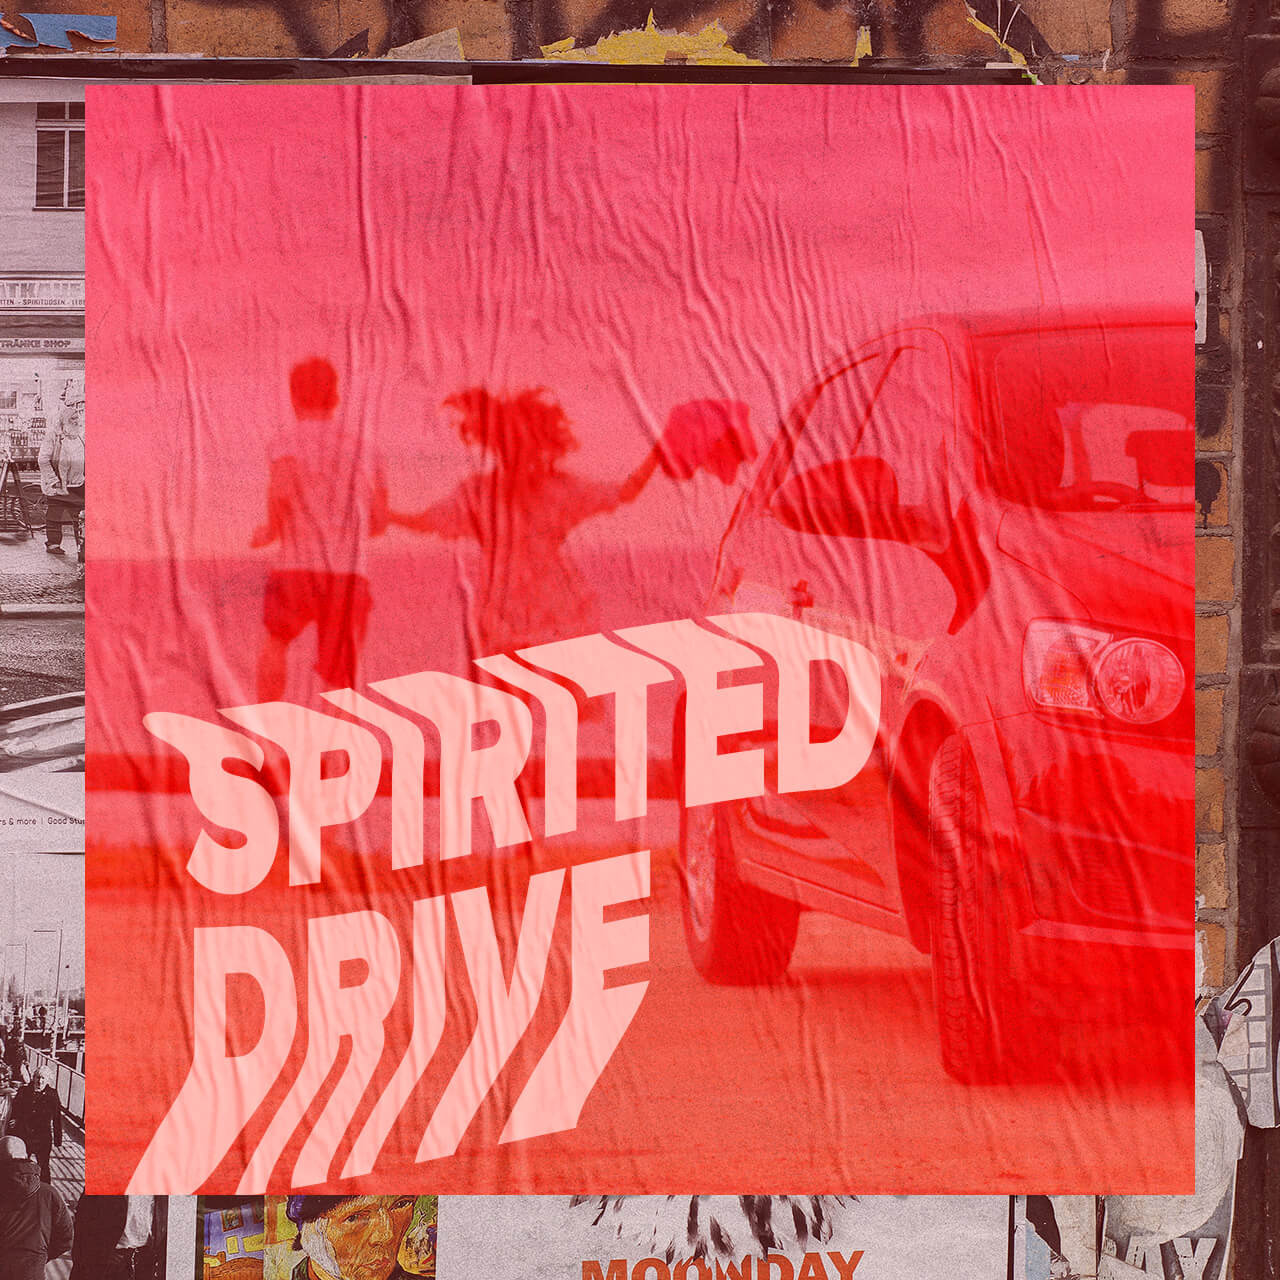 Holden: Spirited Drive